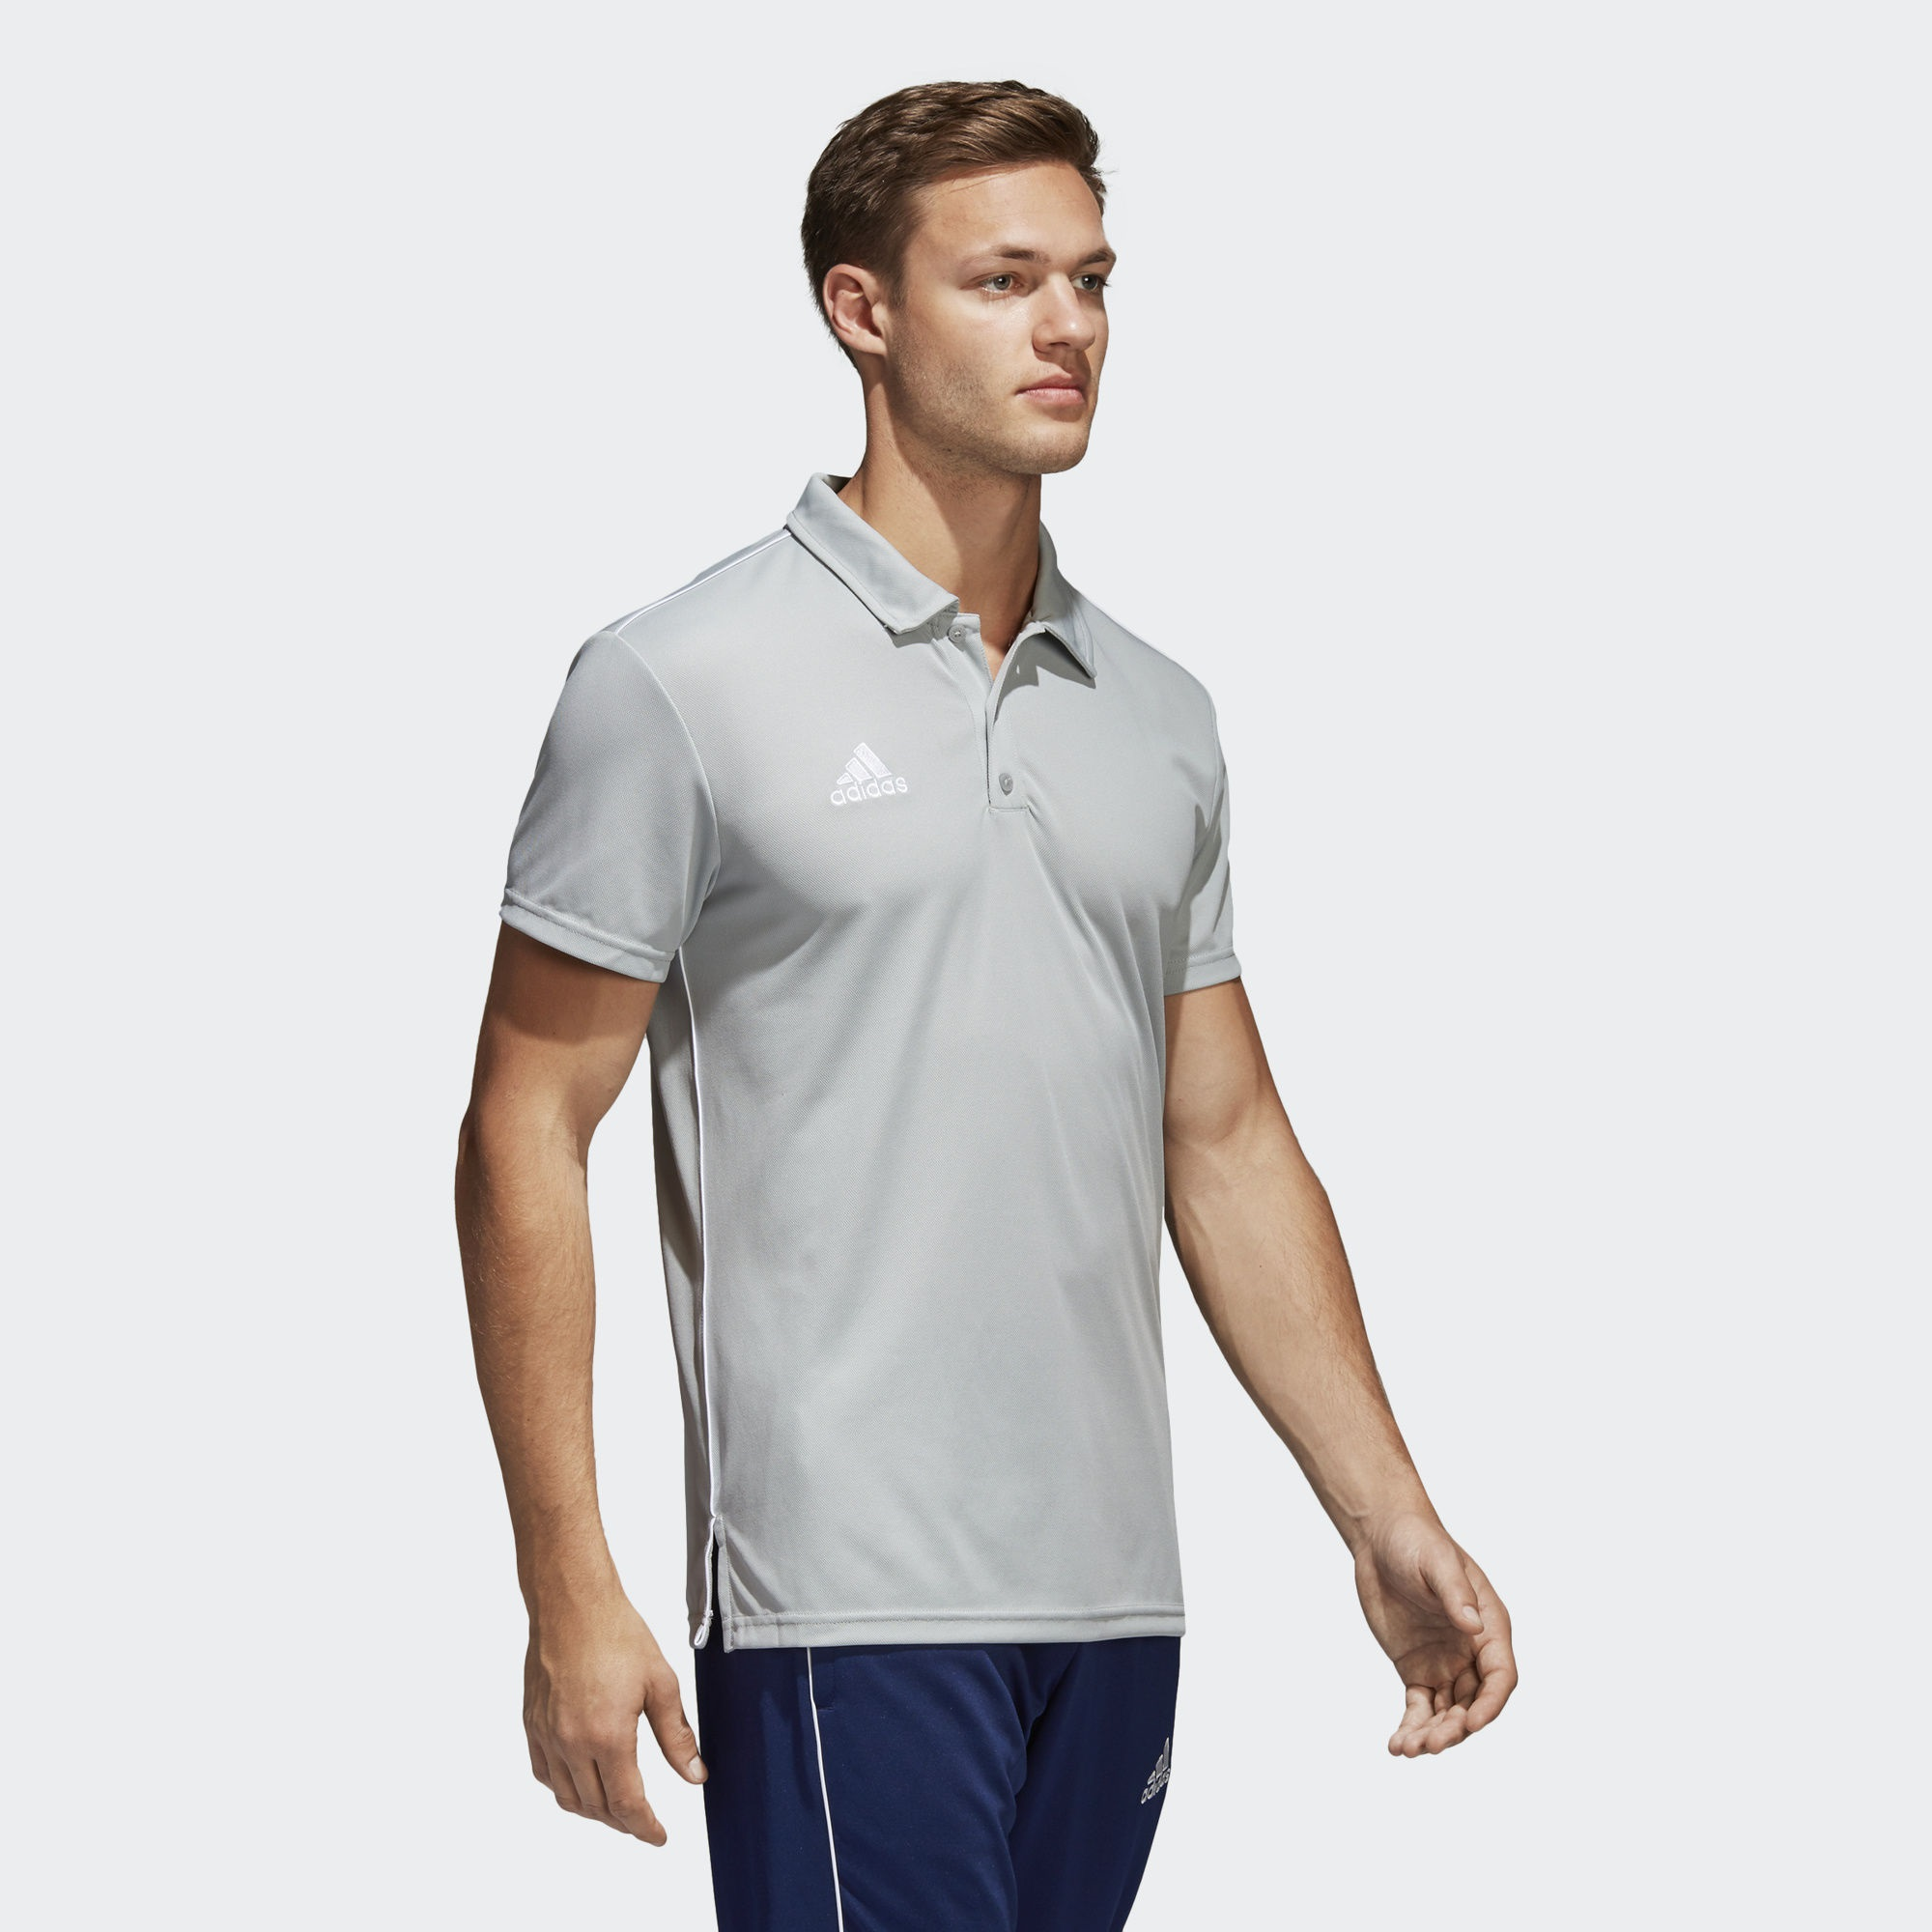 adidas Core 18 Climalite Men Polo Shirt CV3592